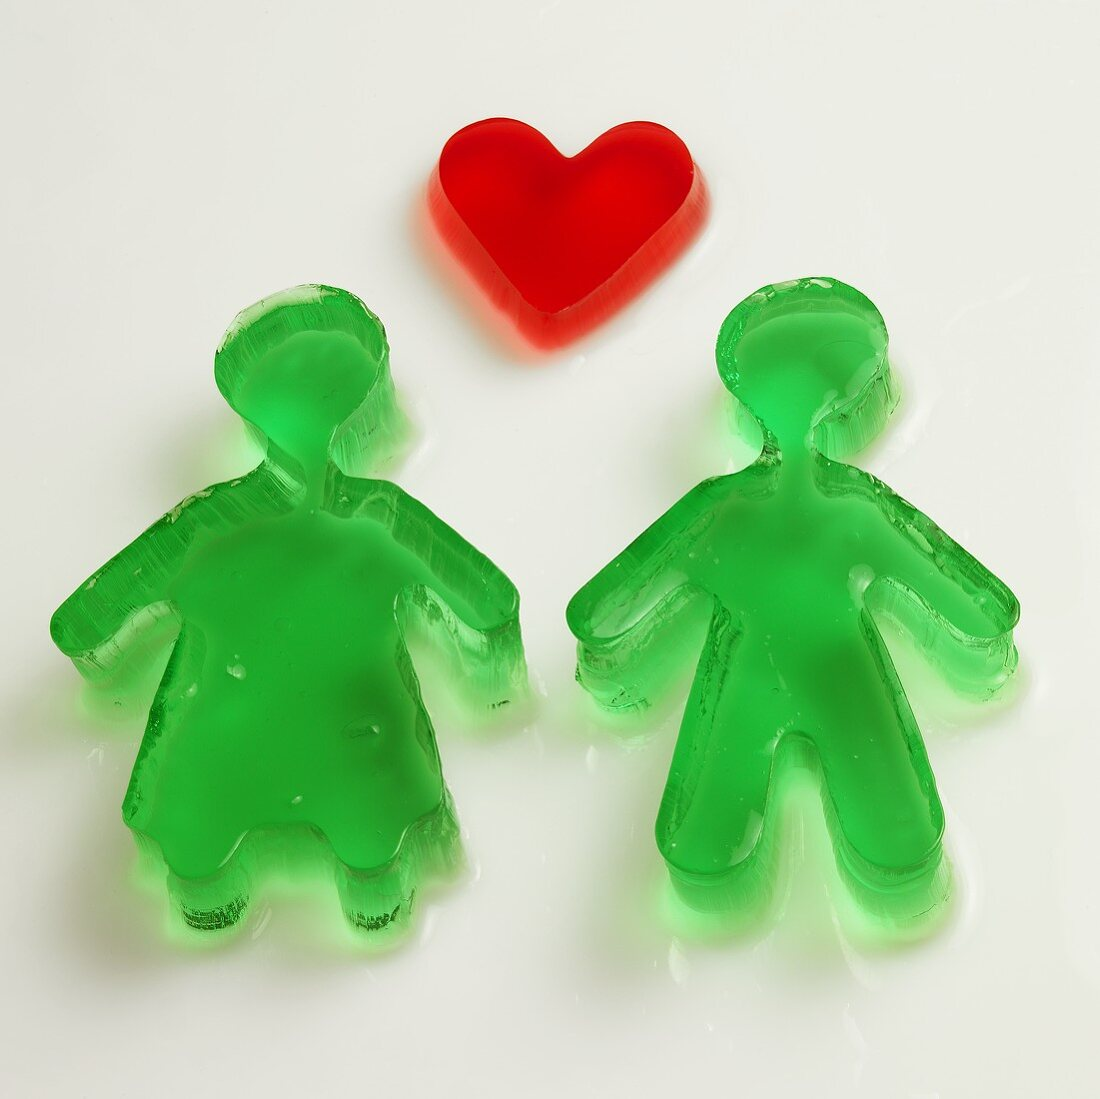 Red jelly heart and green figures in woodruff jelly